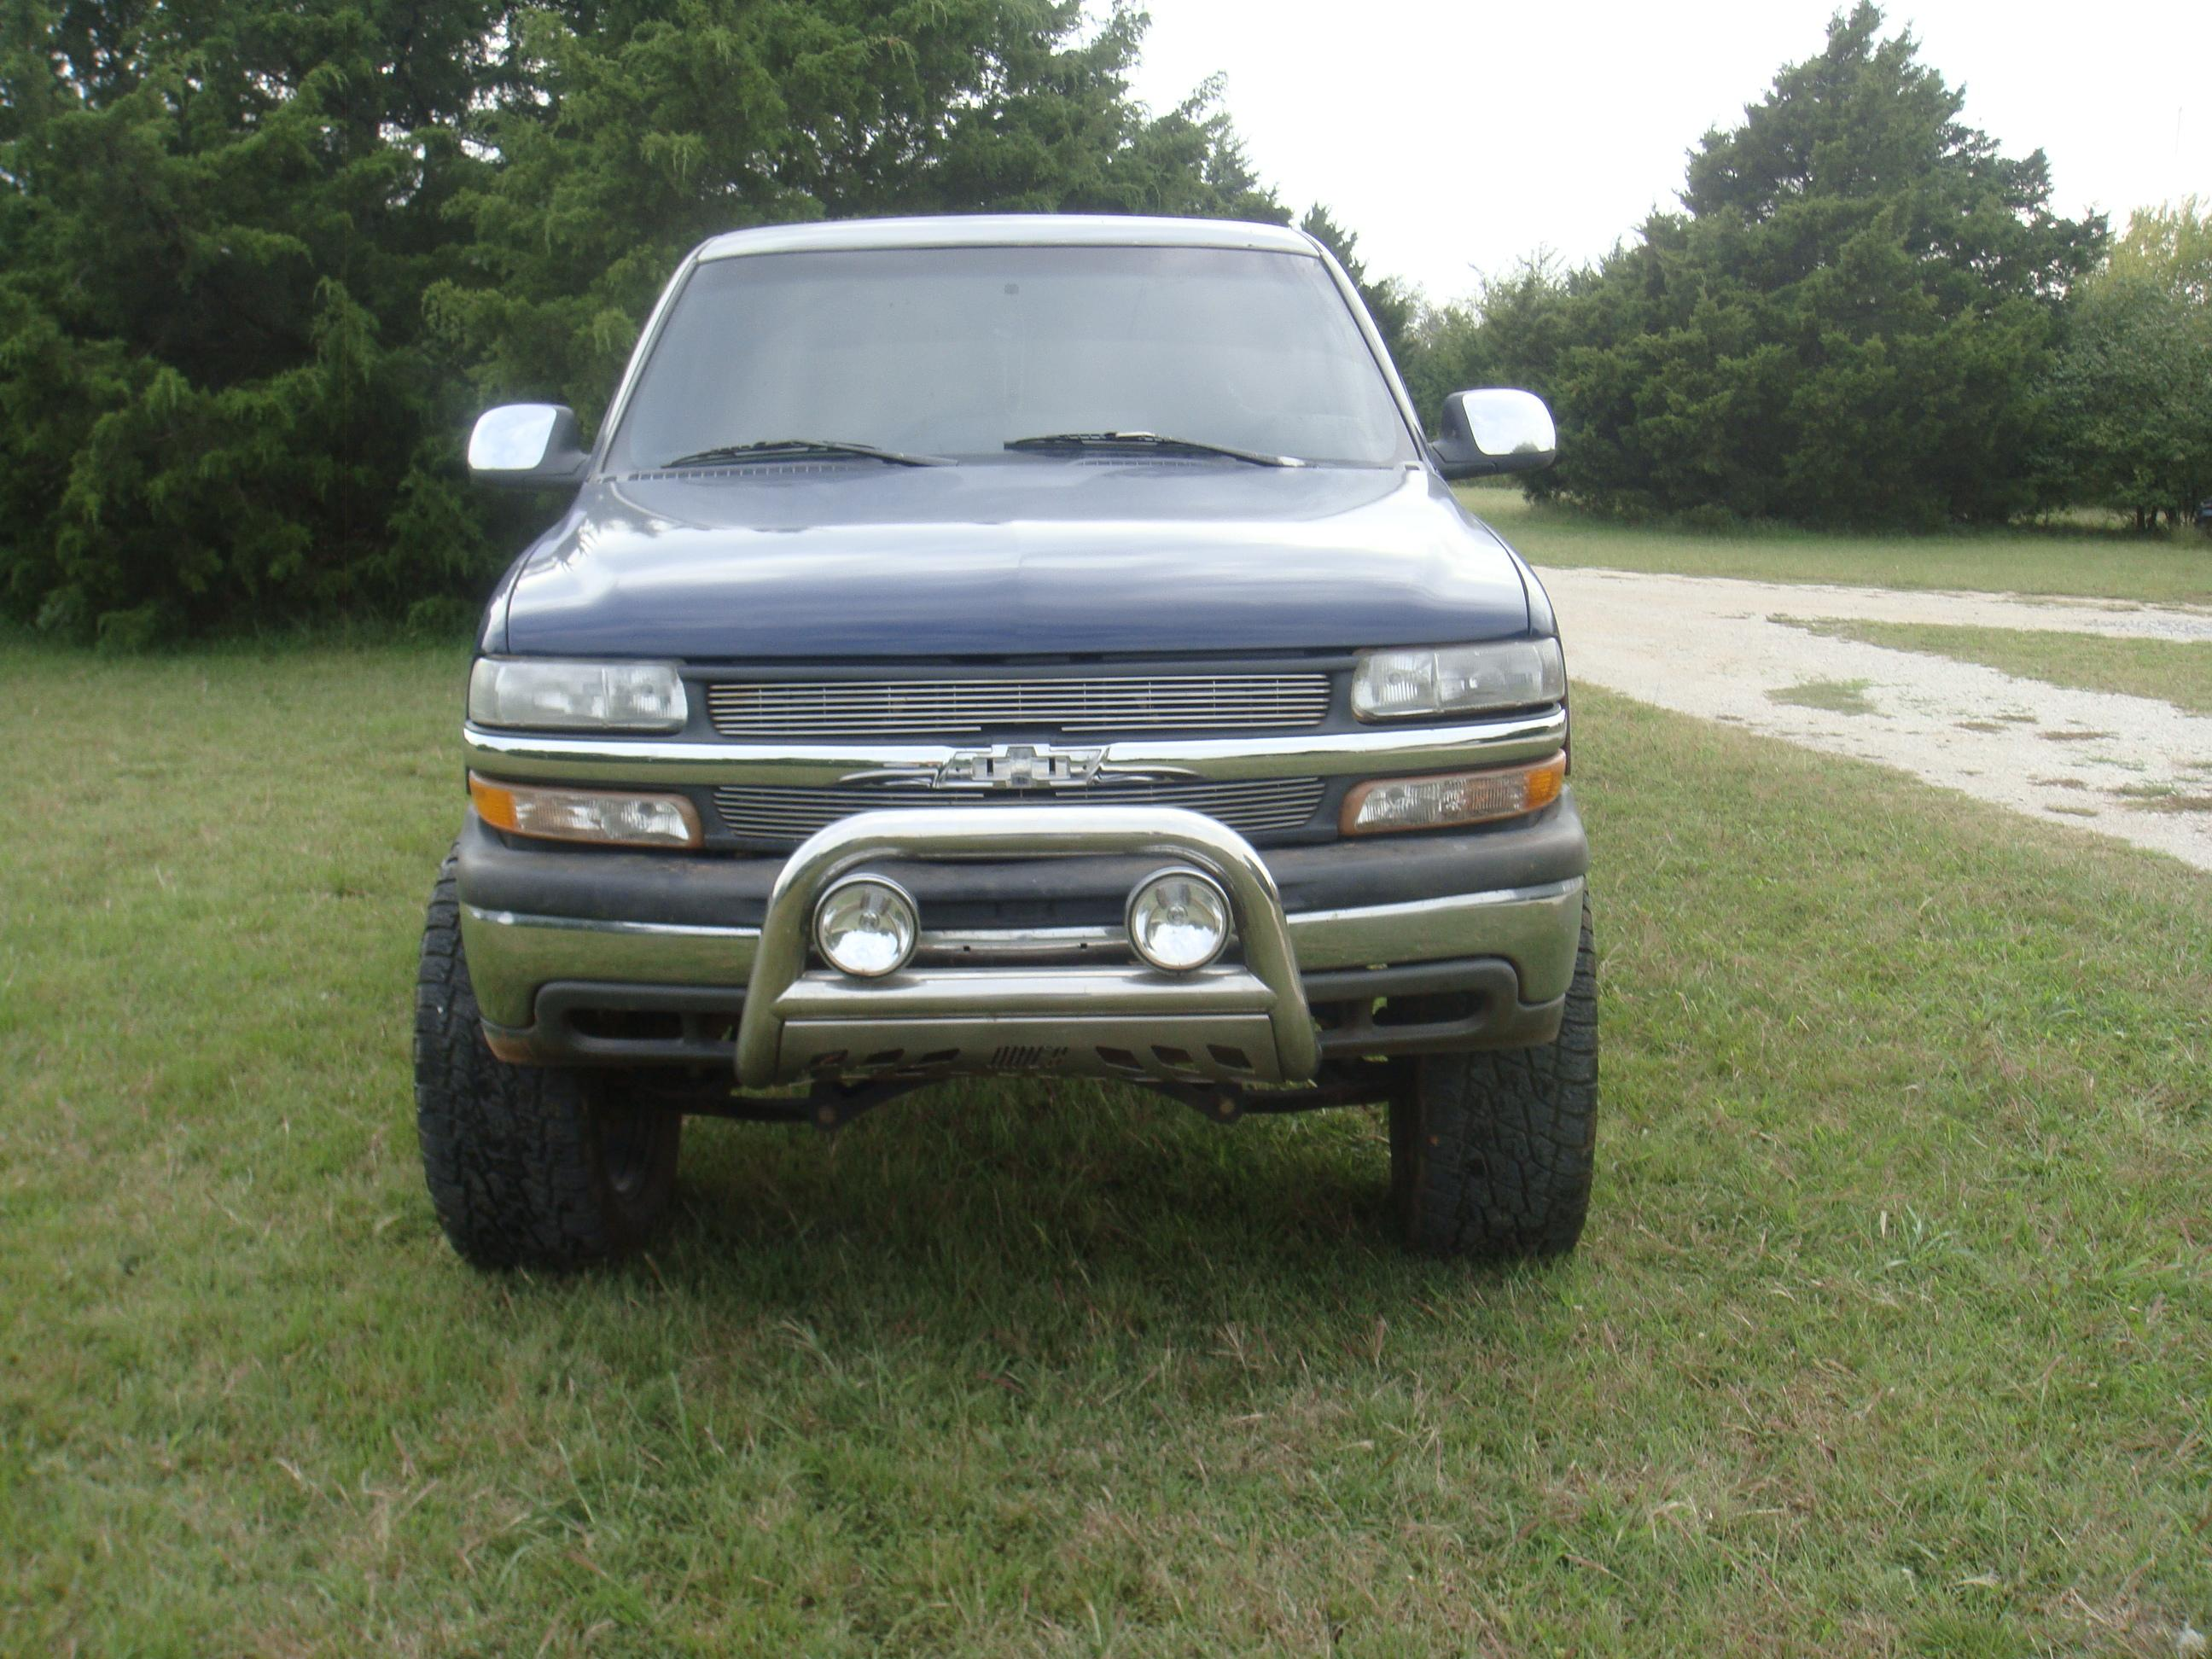 robs 00silverado 2000 chevrolet silverado 1500 regular cab specs photos modification info at. Black Bedroom Furniture Sets. Home Design Ideas